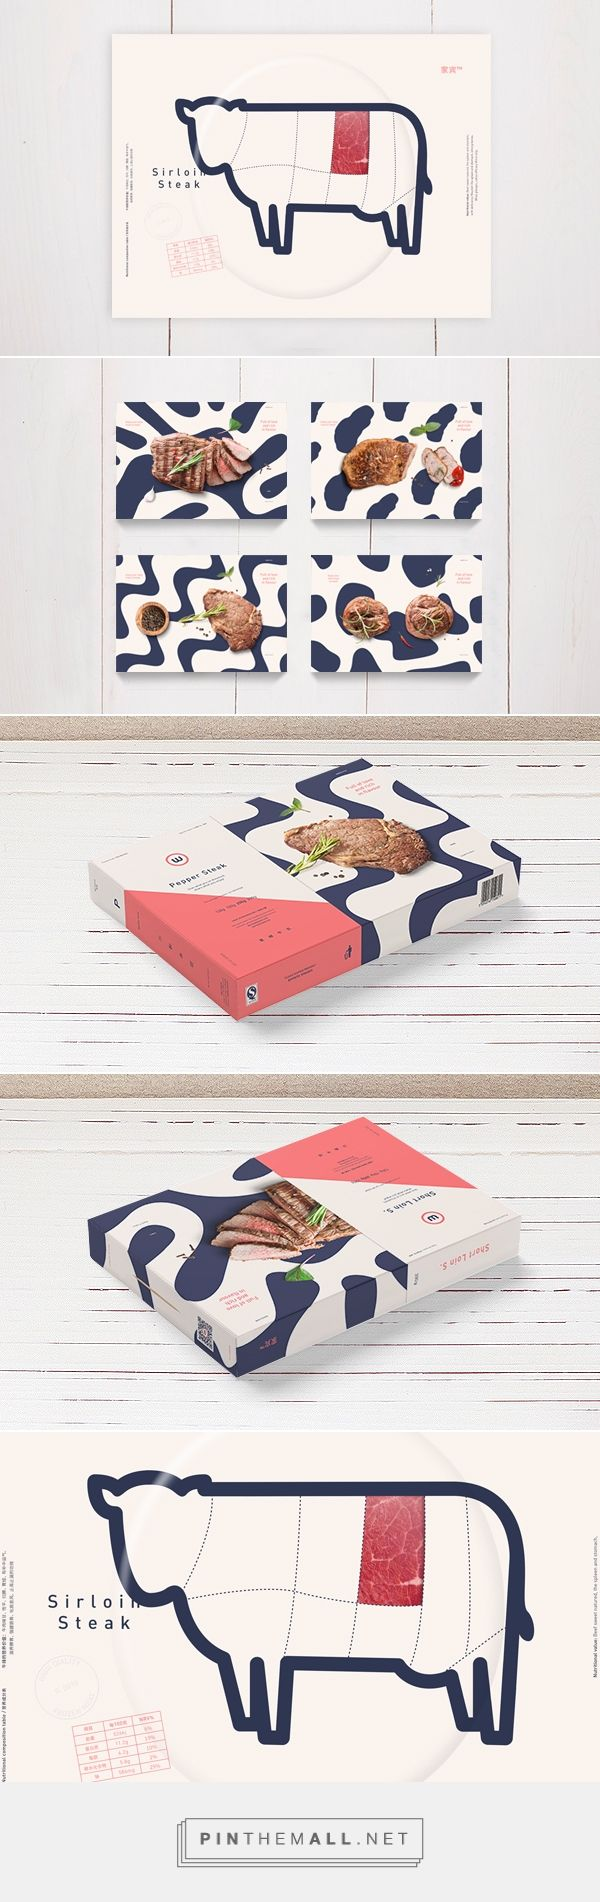 Steak #packaging design. Love the modern colors and pattern.